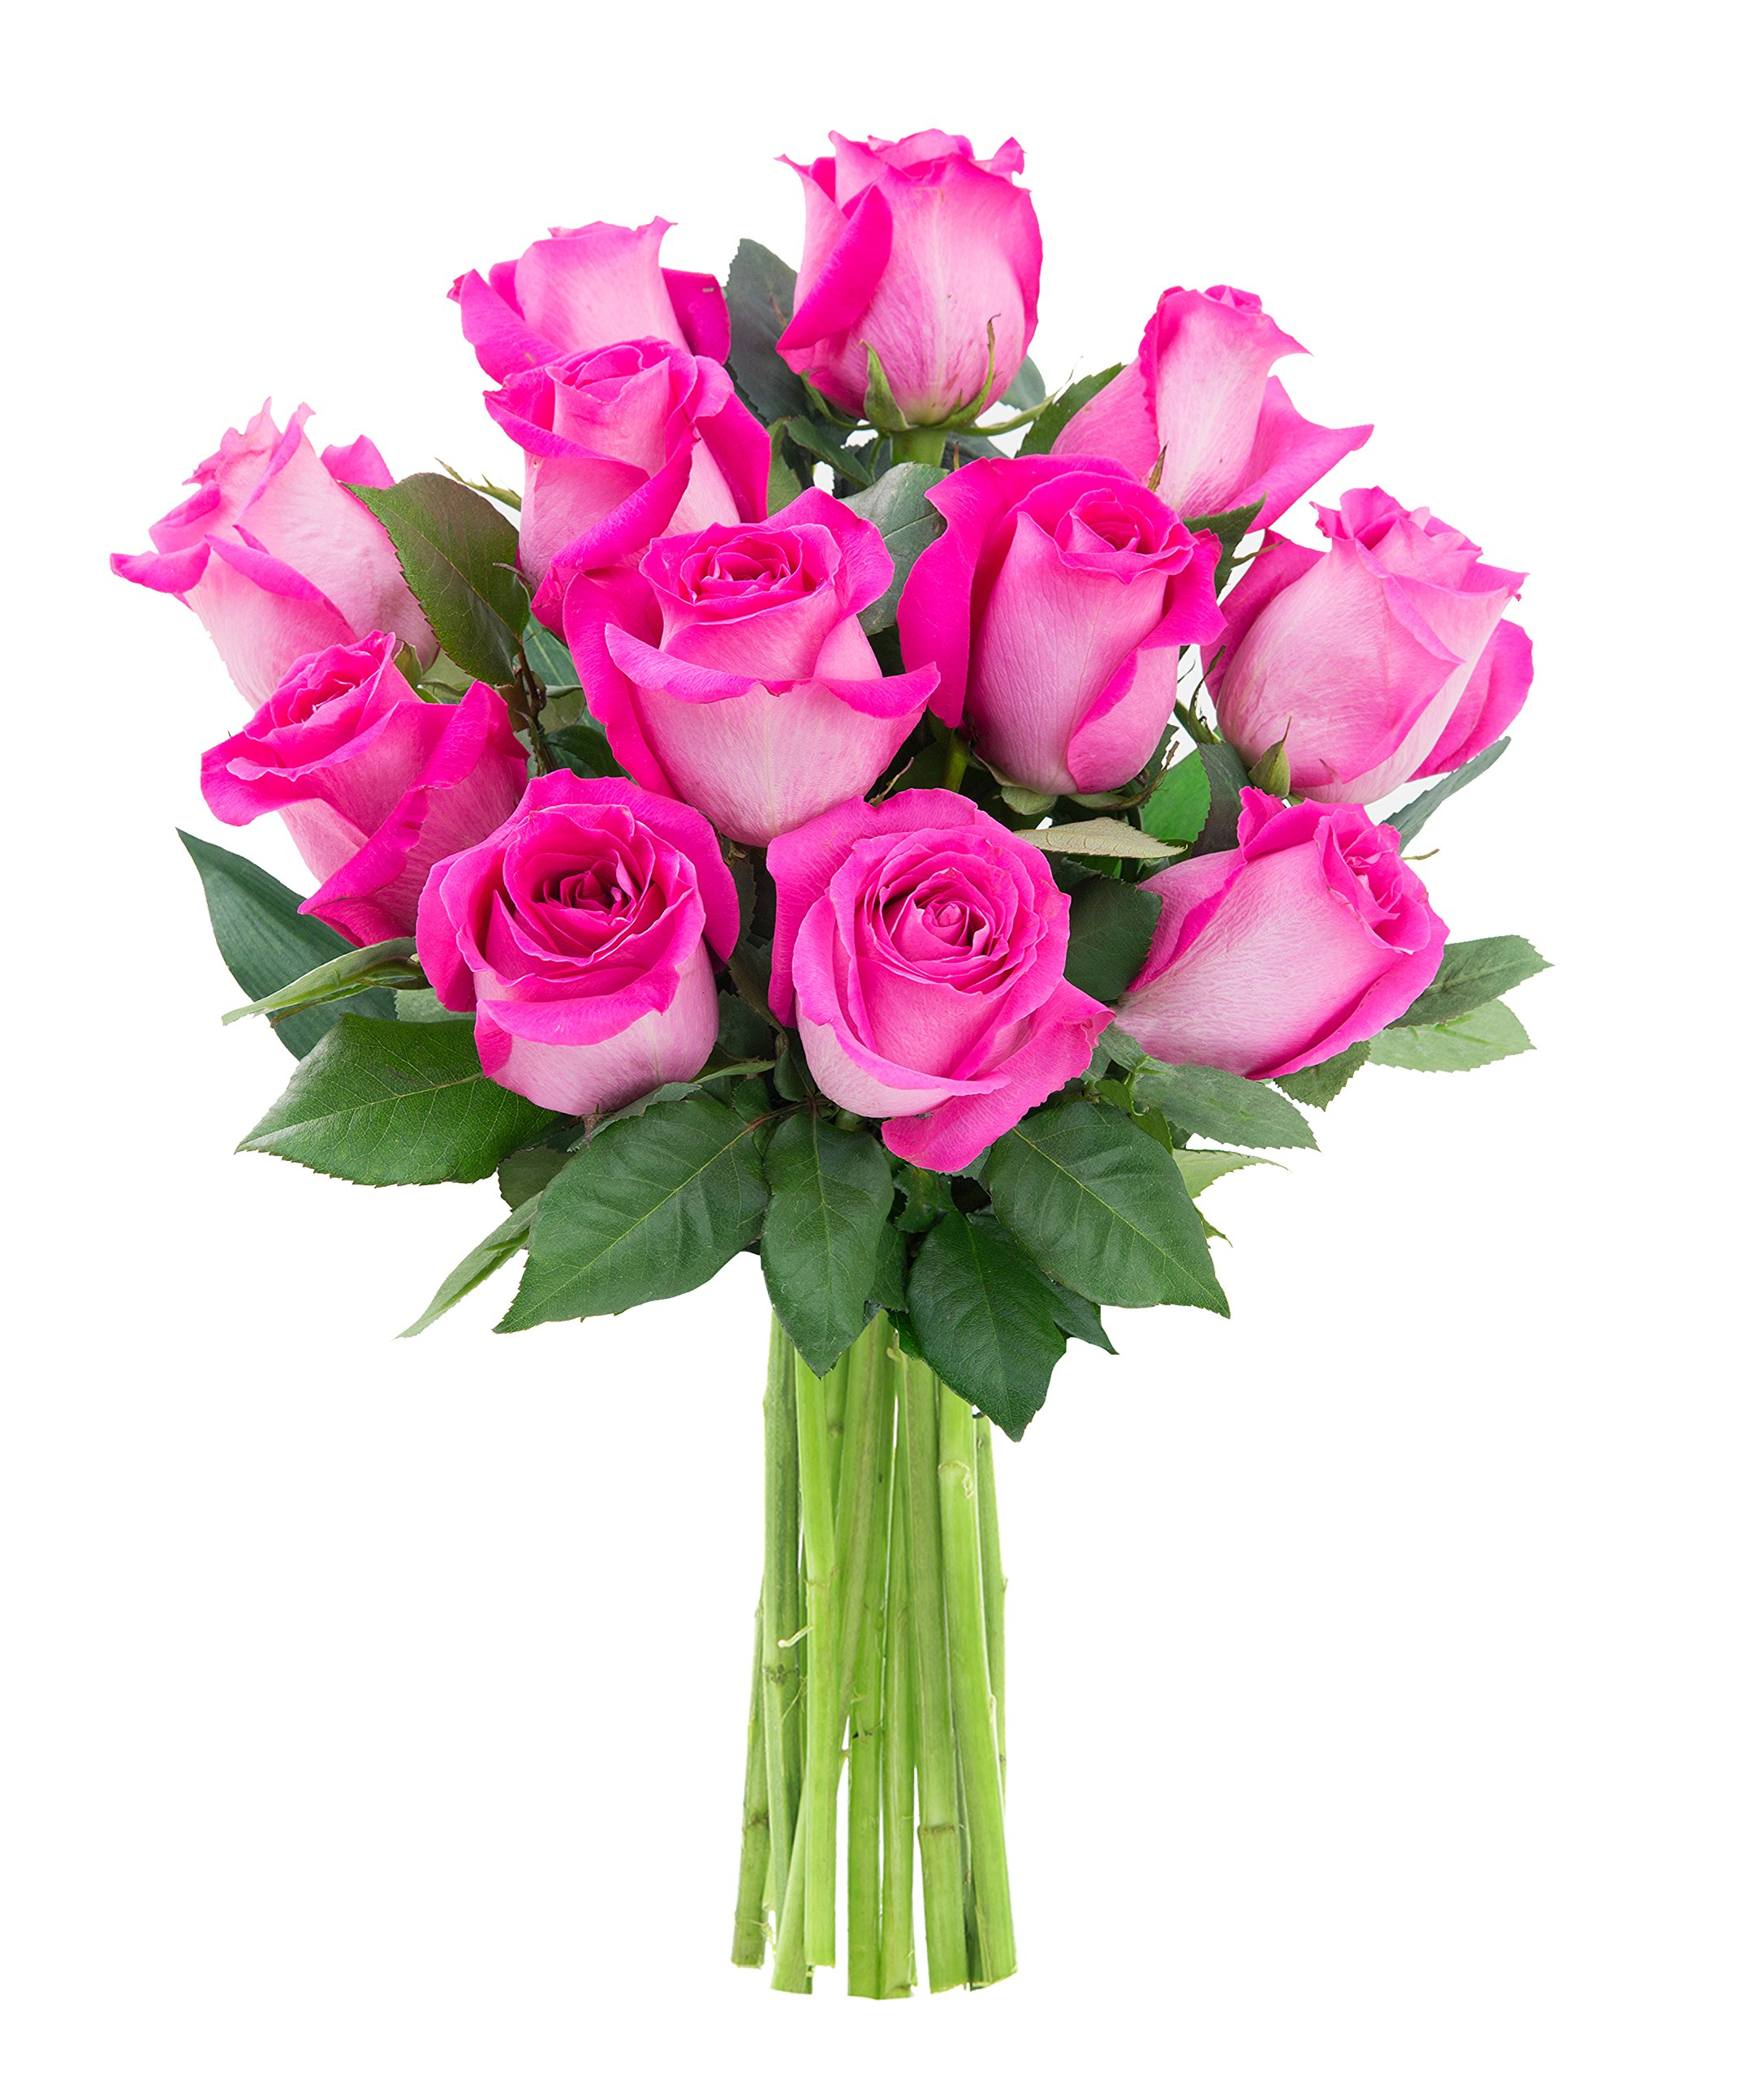 Cheap Pink Fresh Roses Find Pink Fresh Roses Deals On Line At